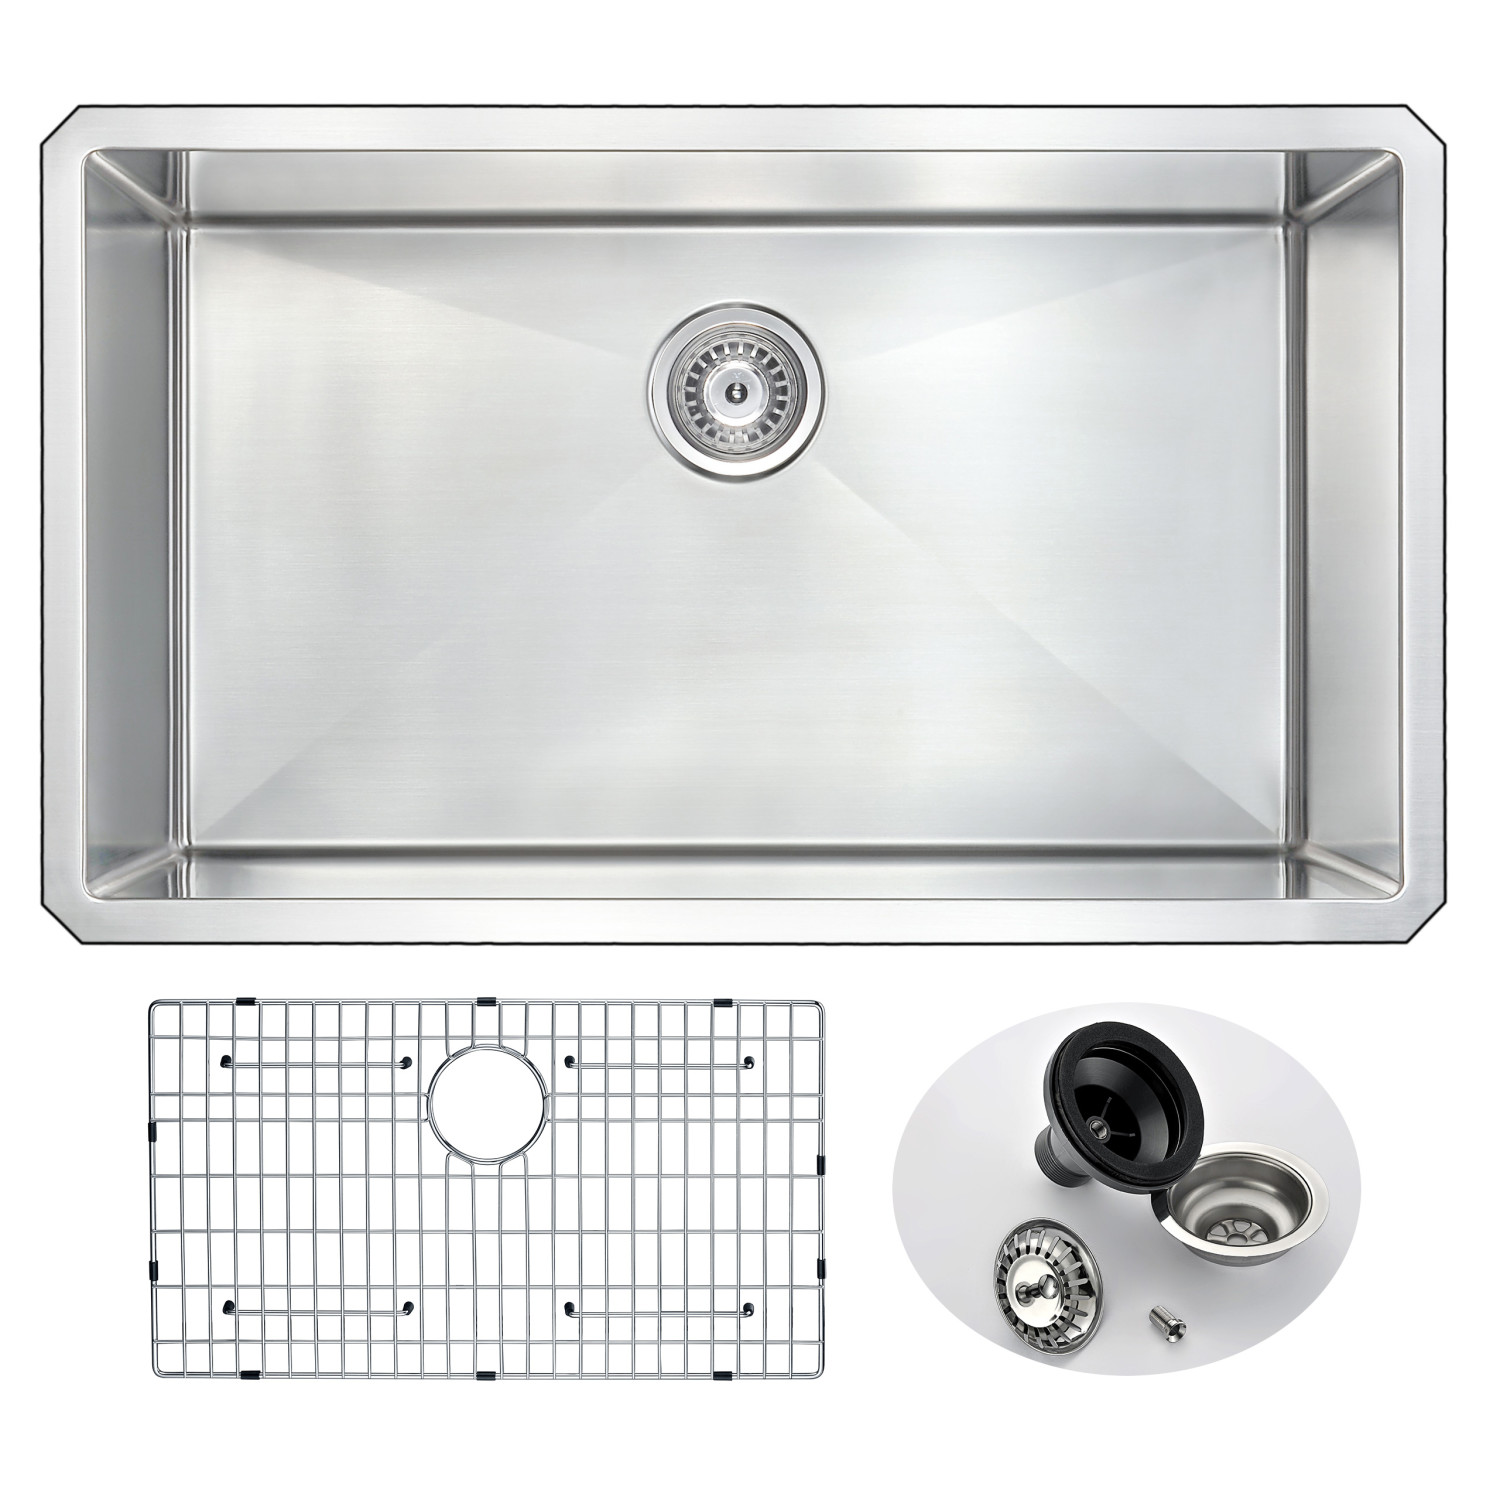 Vanguard Undermount Stainless Steel 32 In 0 Hole Single Bowl Kitchen Sink In Brushed Satin Anzzi